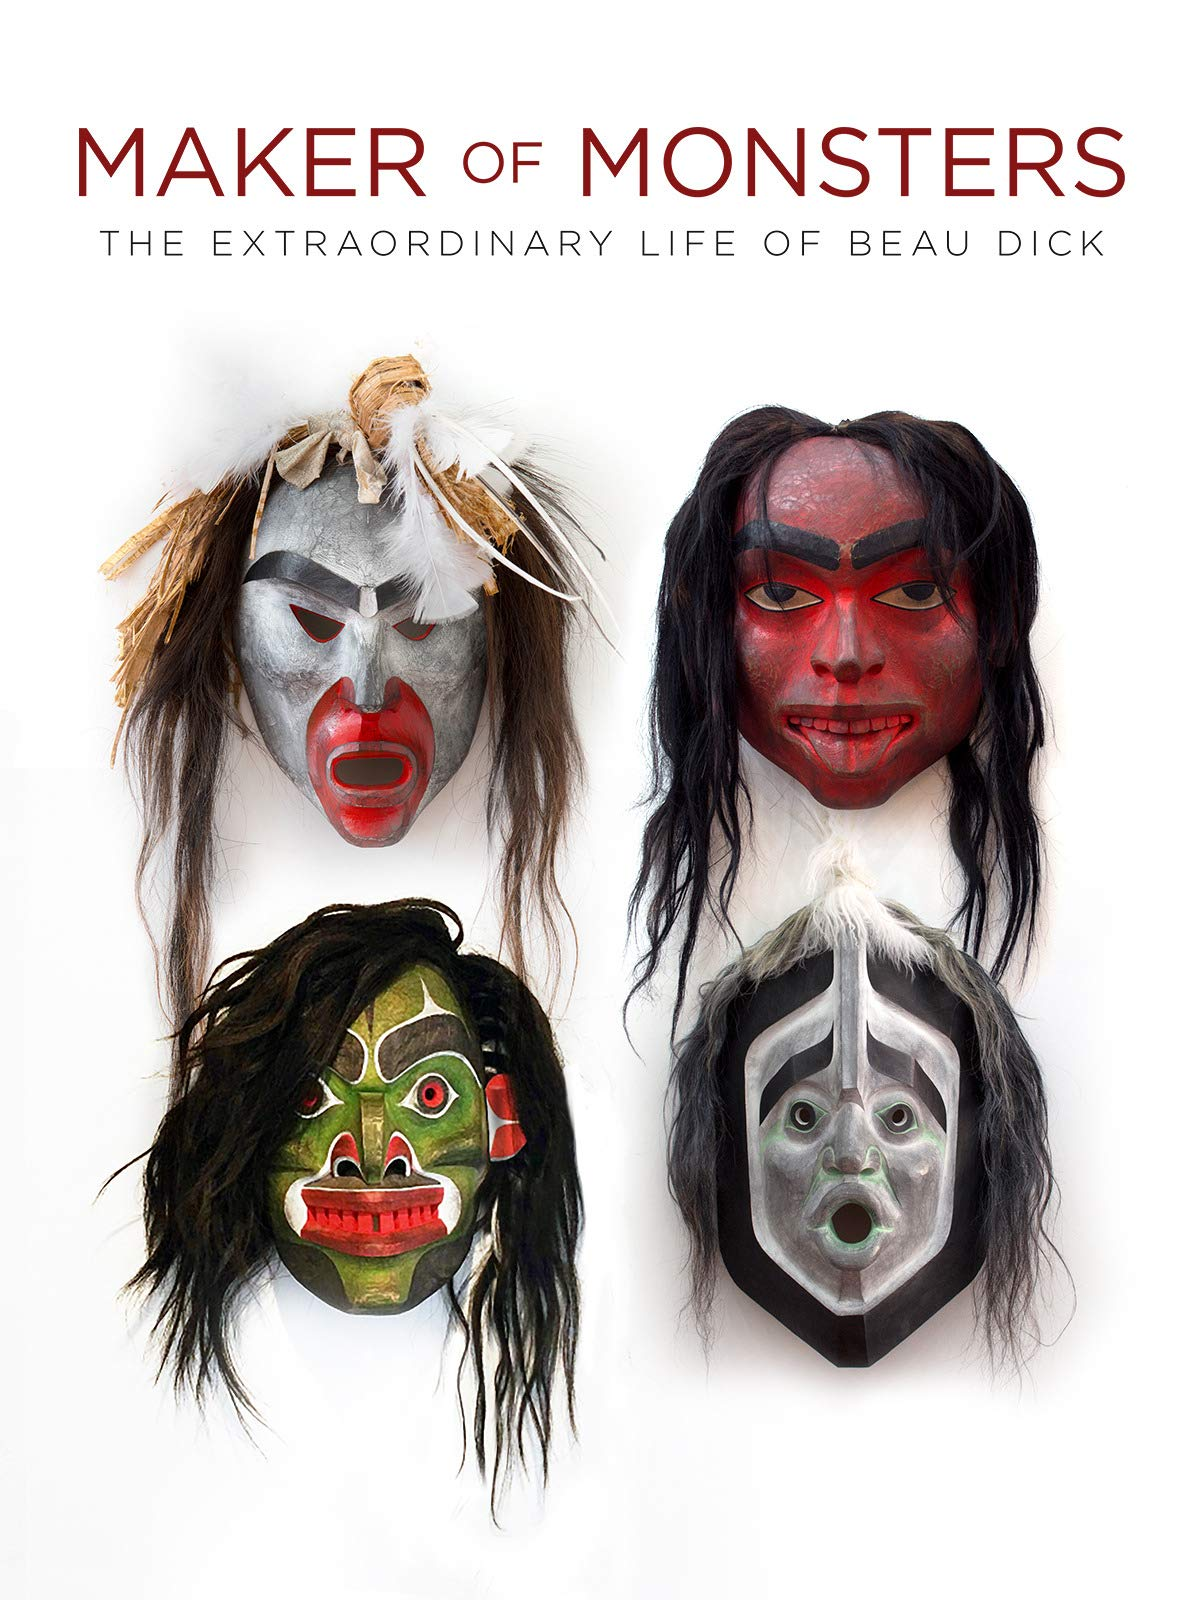 Maker of Monsters: The Extraordinary Life of Beau Dick